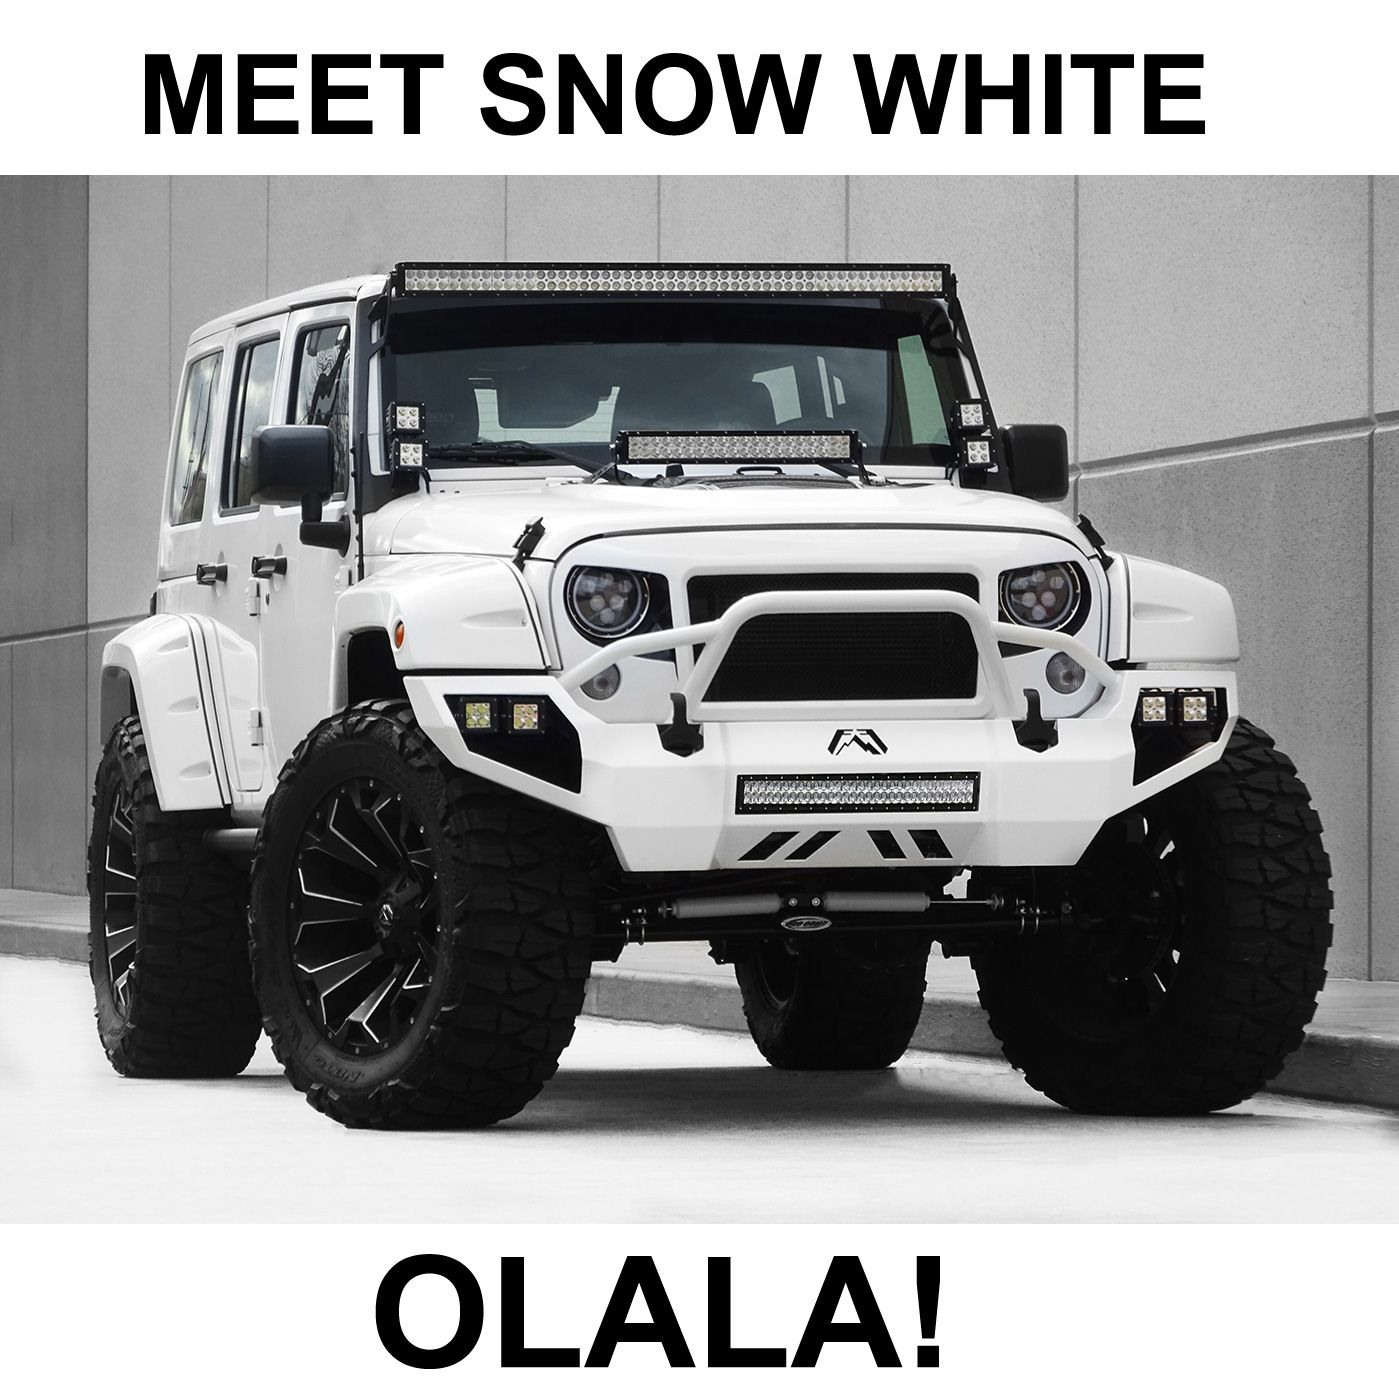 Meet Snow White Jeep Jeepwrangler Jeep Wrangler Sport